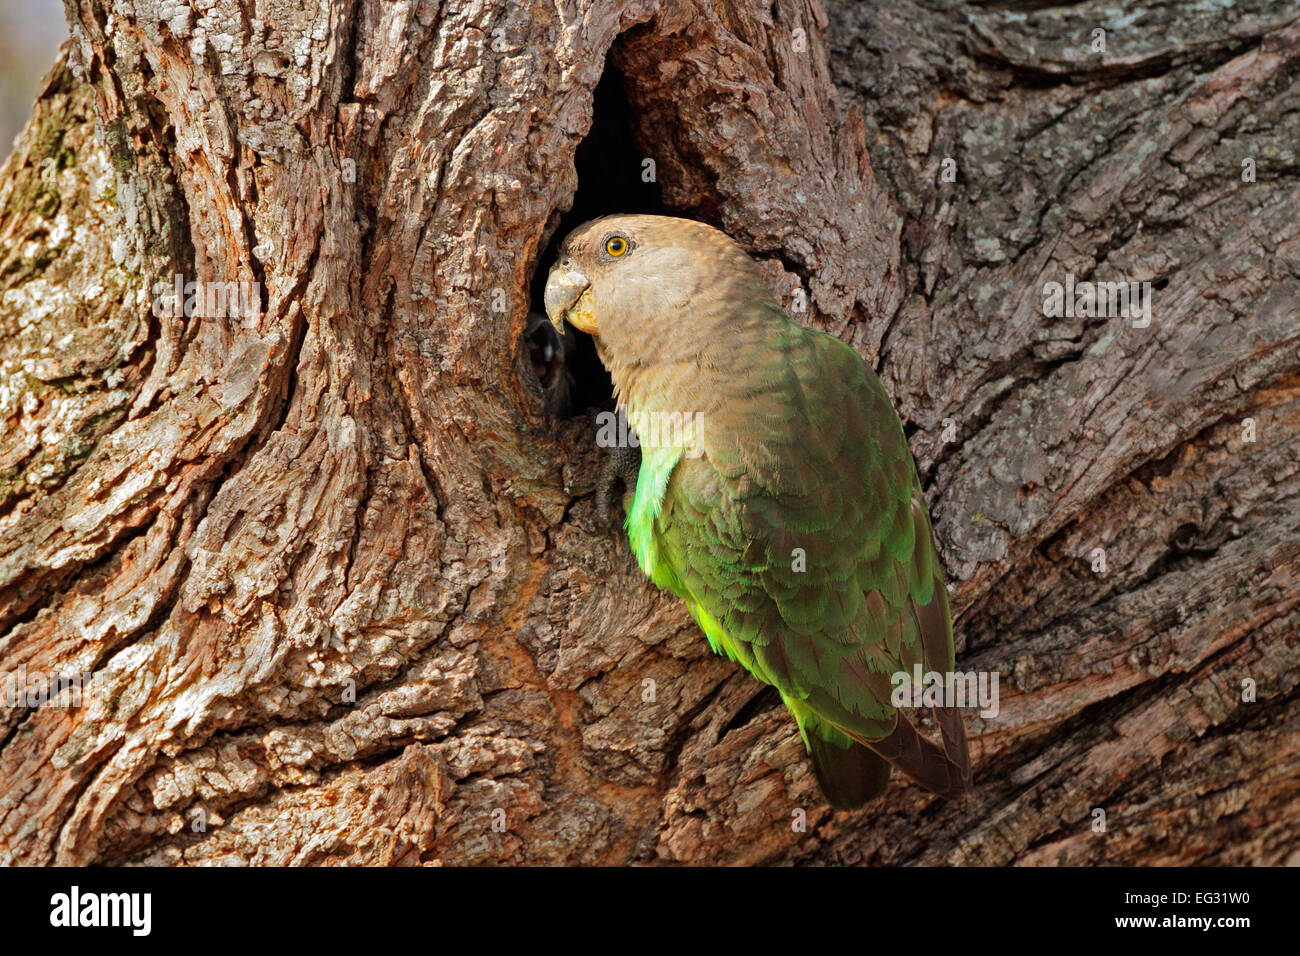 A brownheaded parrot (Piocephalus cryptoxanthus) at its nest in a tree, South Africa - Stock Image